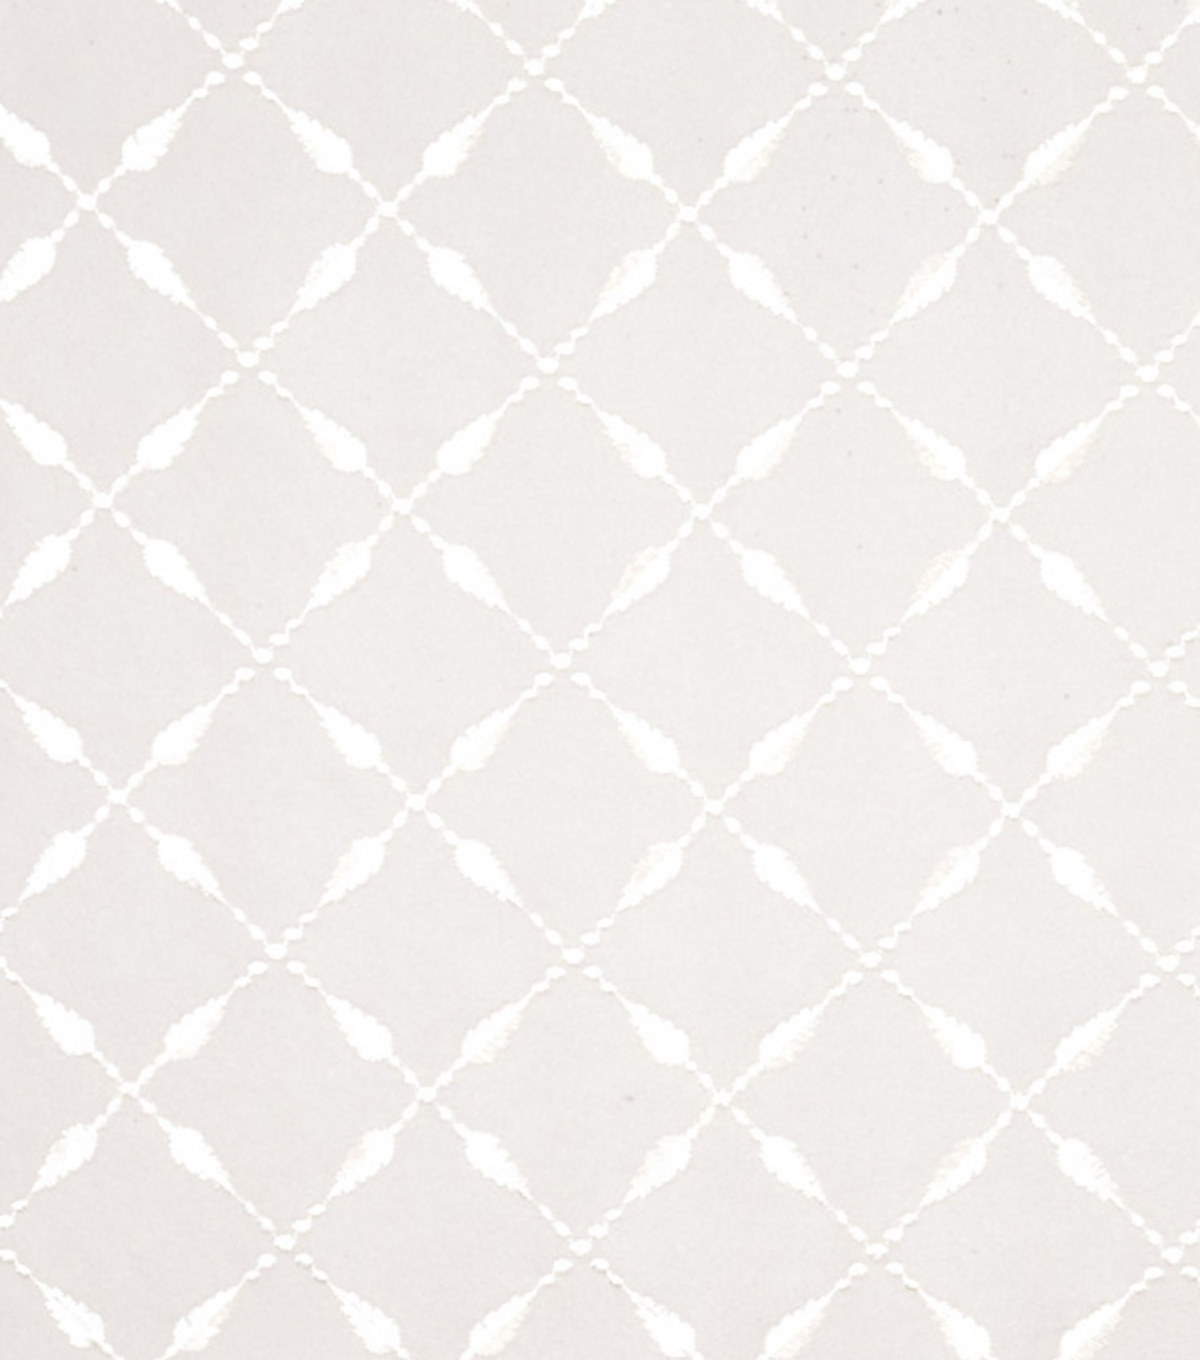 Home Decor 8\u0022x8\u0022 Fabric Swatch-Eaton Square Angelfish   Coconut